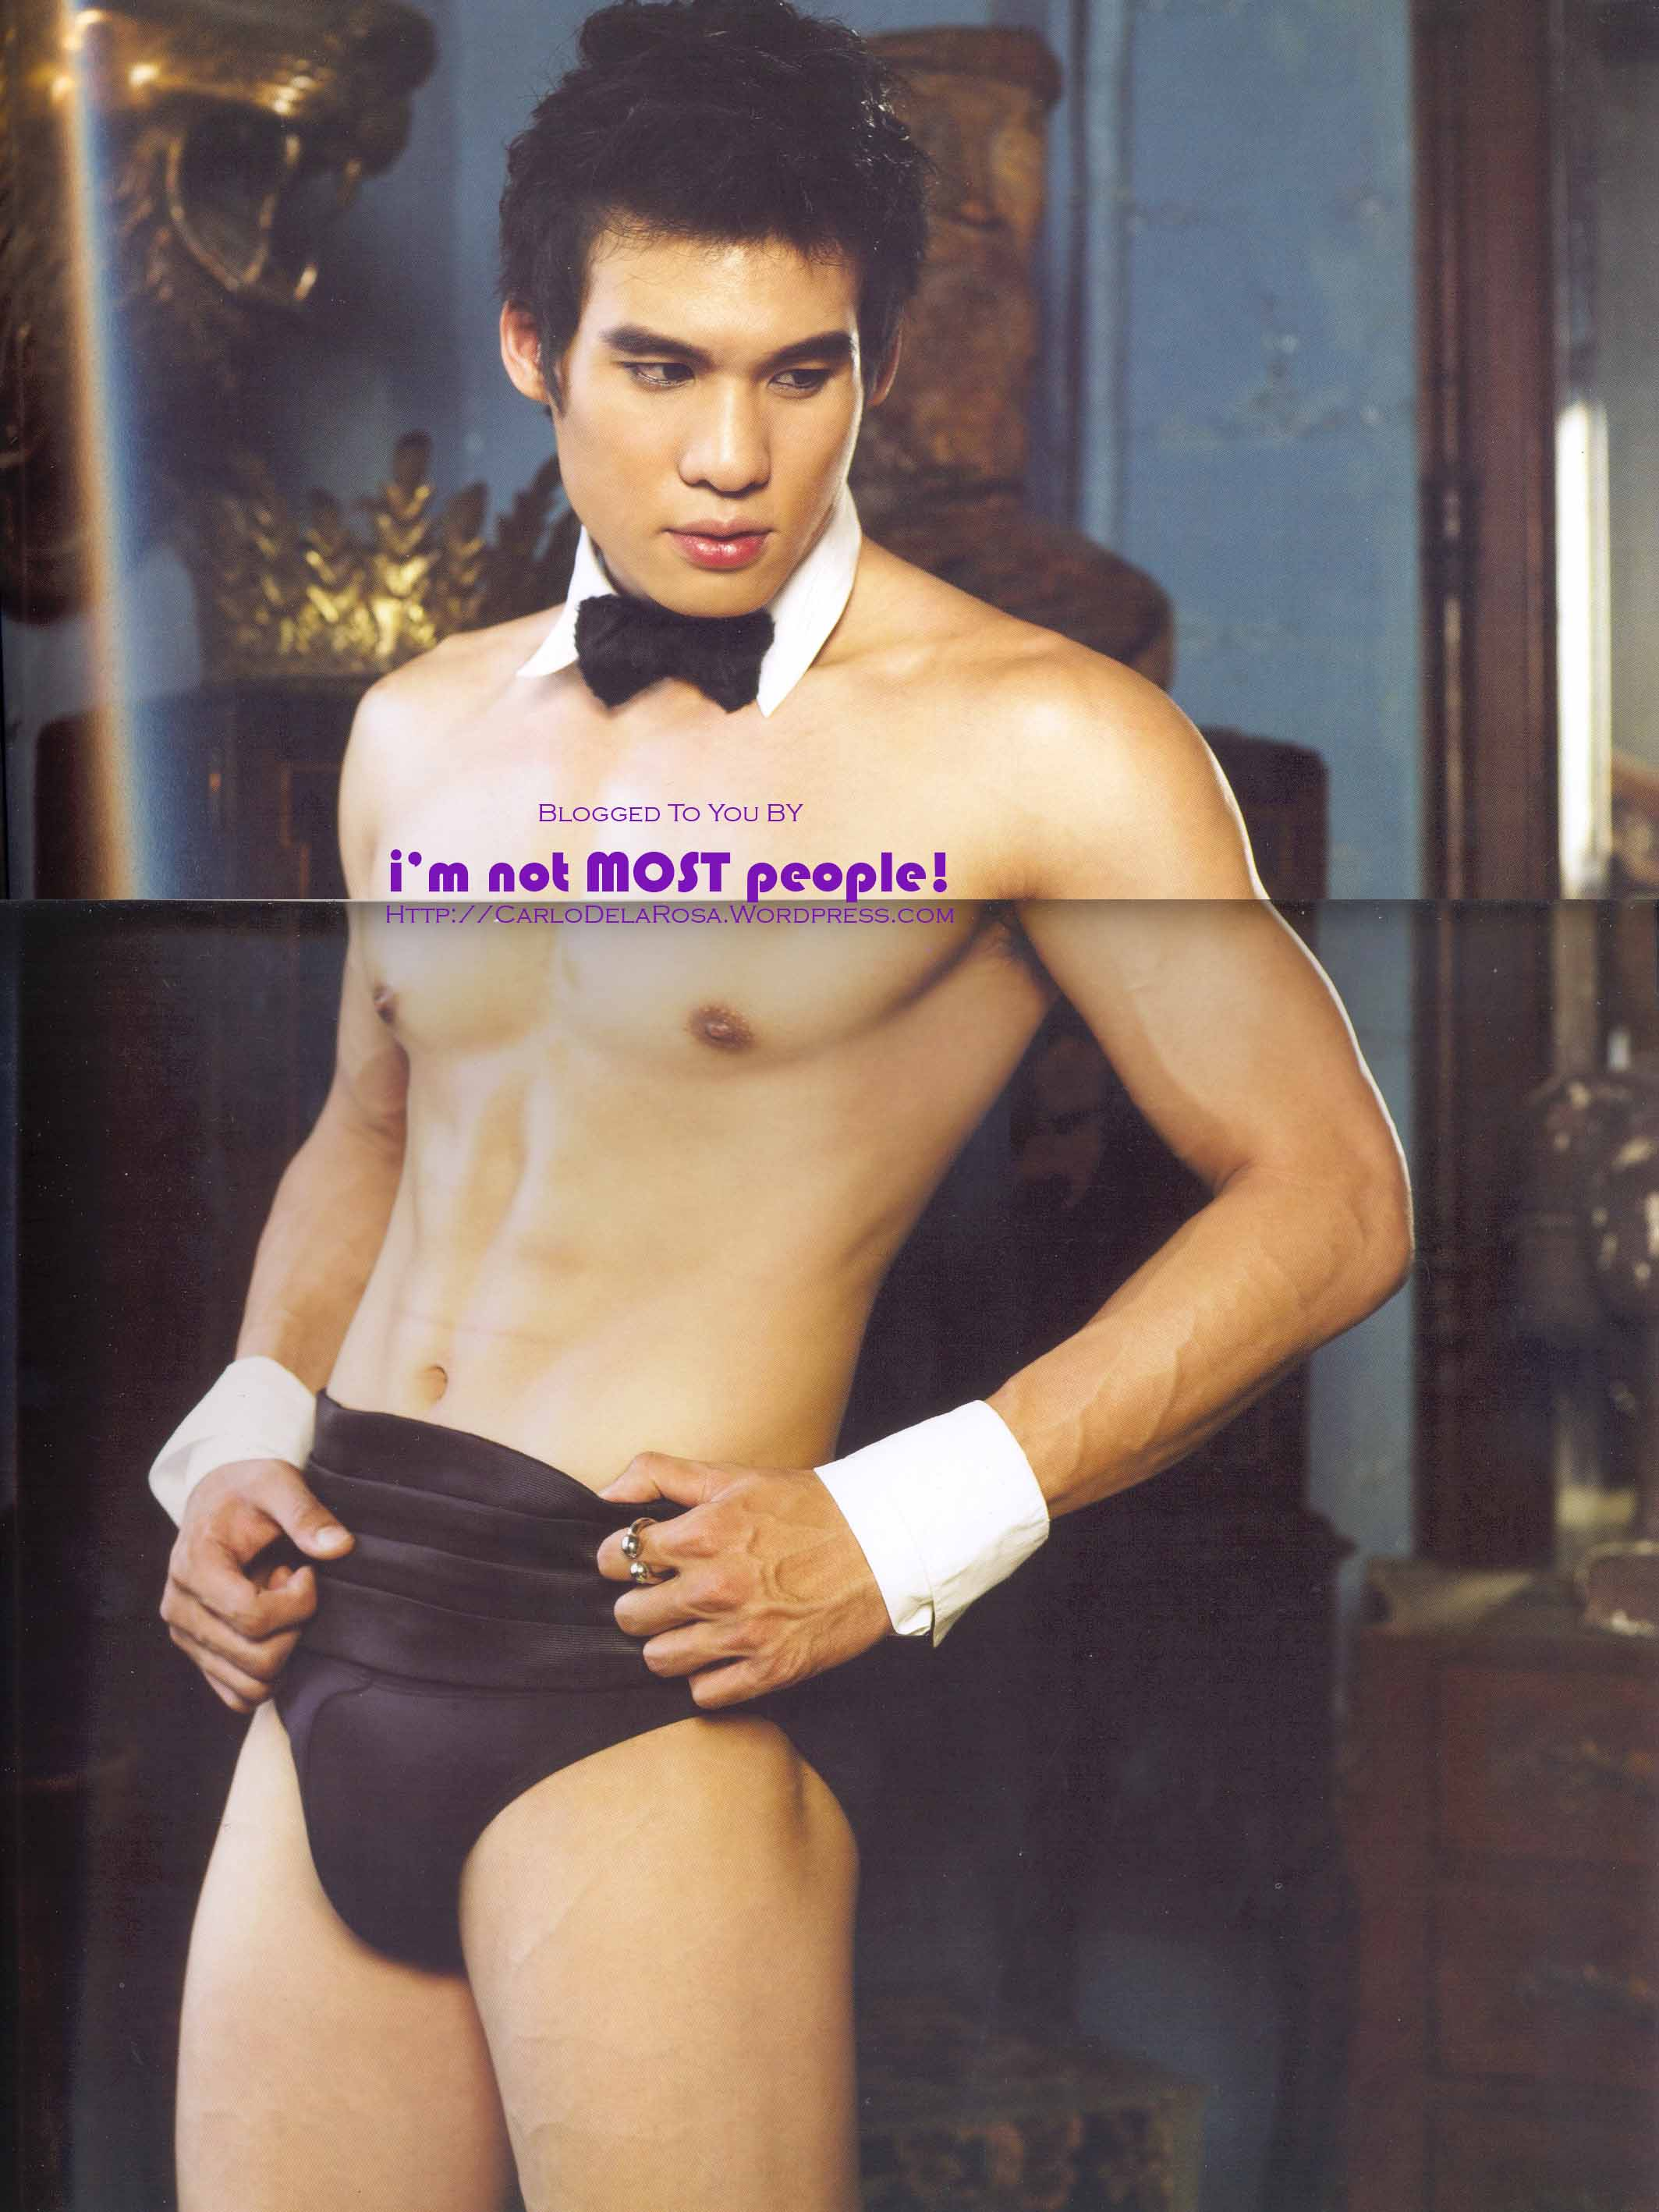 Diether ocampo naked agree, this